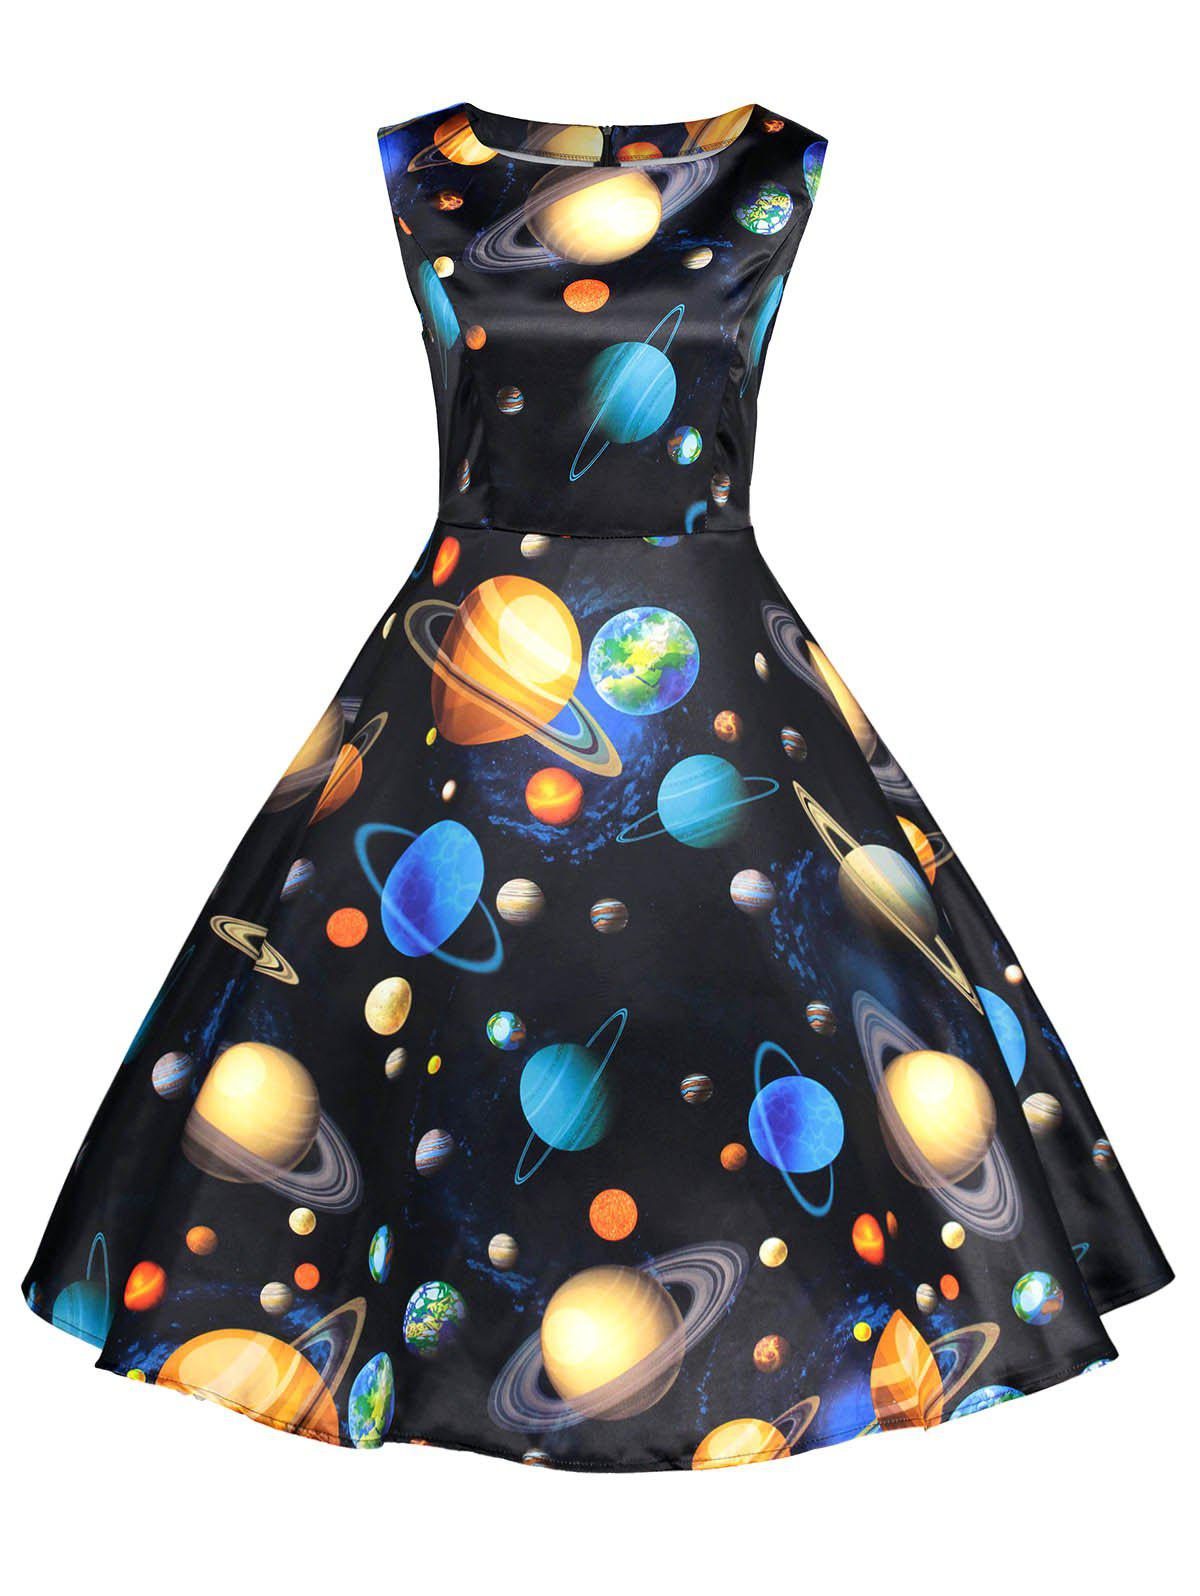 fcd7021c7597 2018 Planets Print Sleeveless Fit And Flare Dress In Colormix 2xl ...